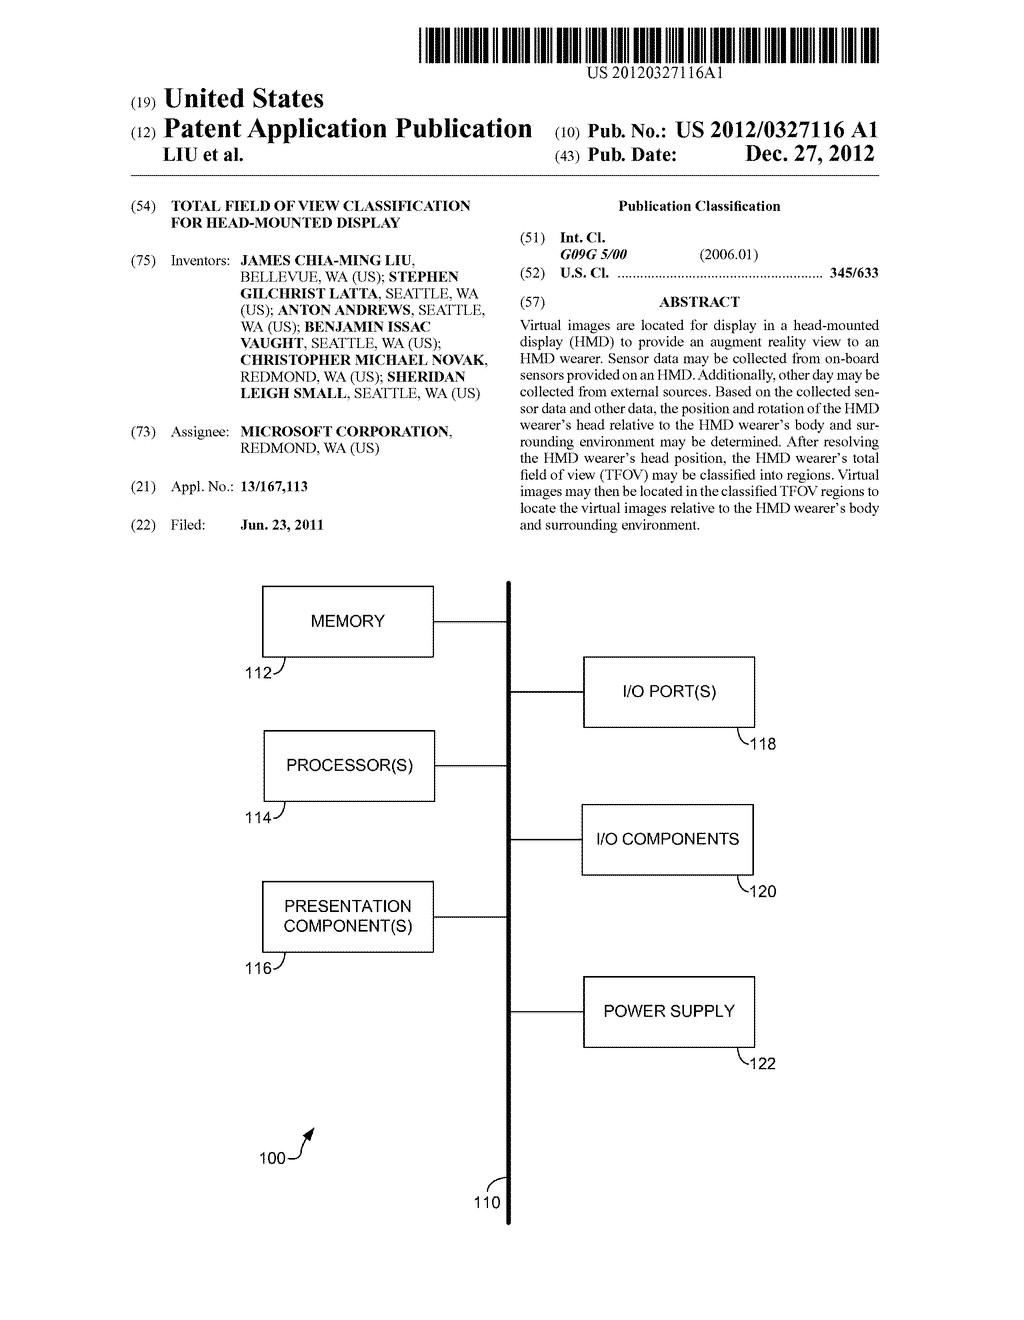 TOTAL FIELD OF VIEW CLASSIFICATION FOR HEAD-MOUNTED DISPLAY - diagram, schematic, and image 01